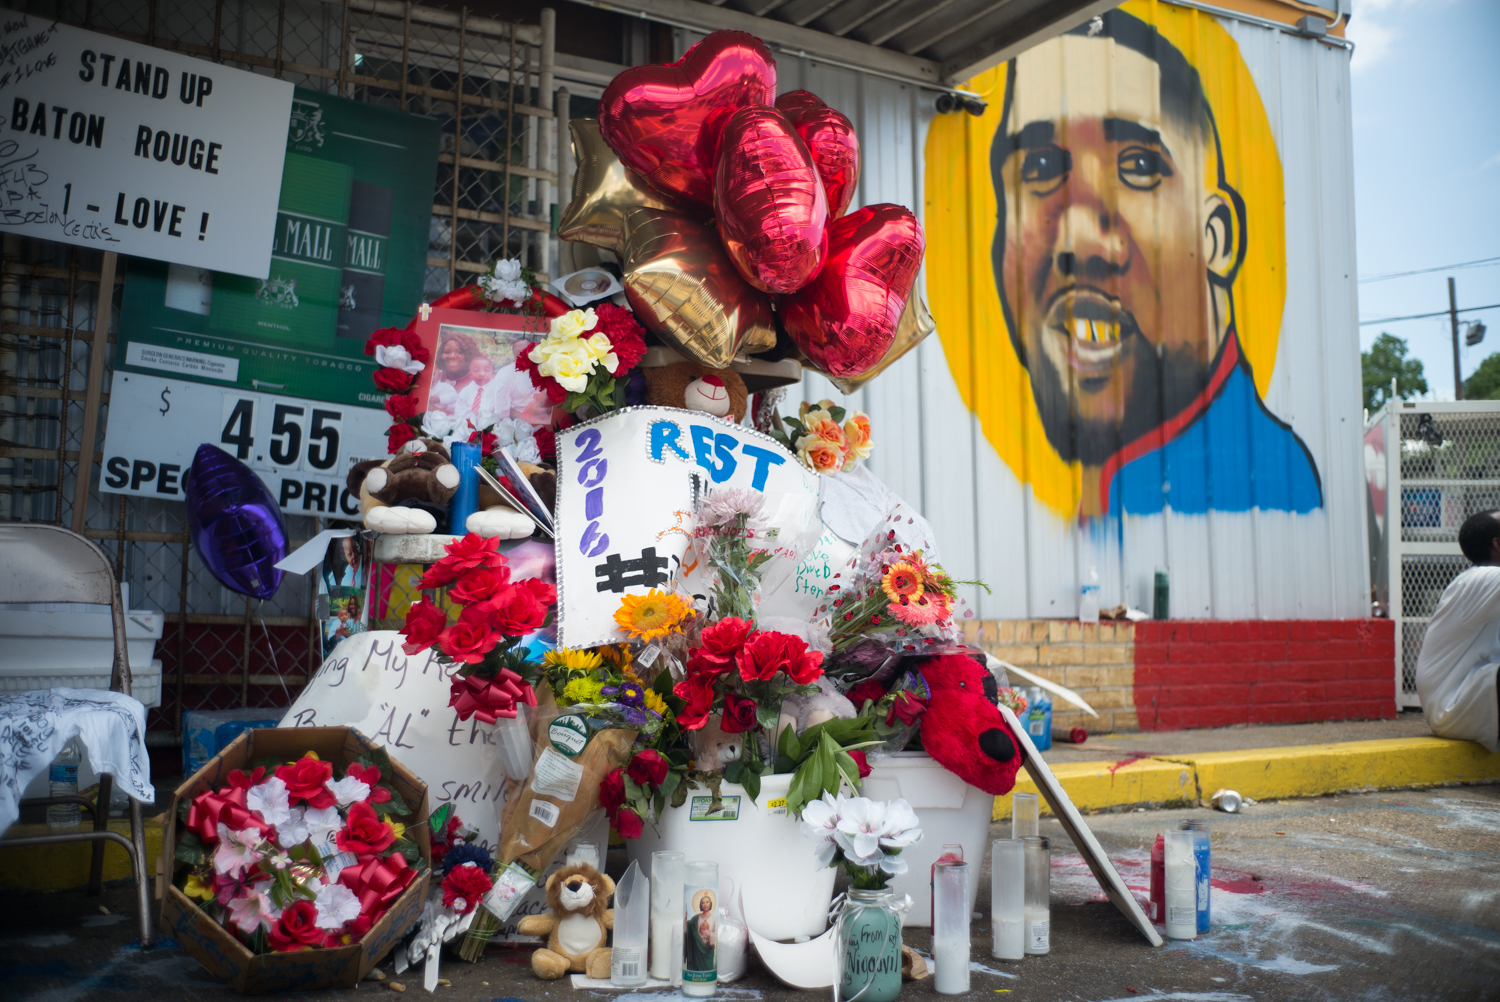 A memorial builds from items left behind by friends, family and the citizens of Baton Rouge at the site where Alton Sterling, 37, was shot and killed by a police officer after a homeless man called in a complaint that Sterling had brandished a gun after asking him for money. Sterling had been selling CD's outside of the Triple S grocery store.